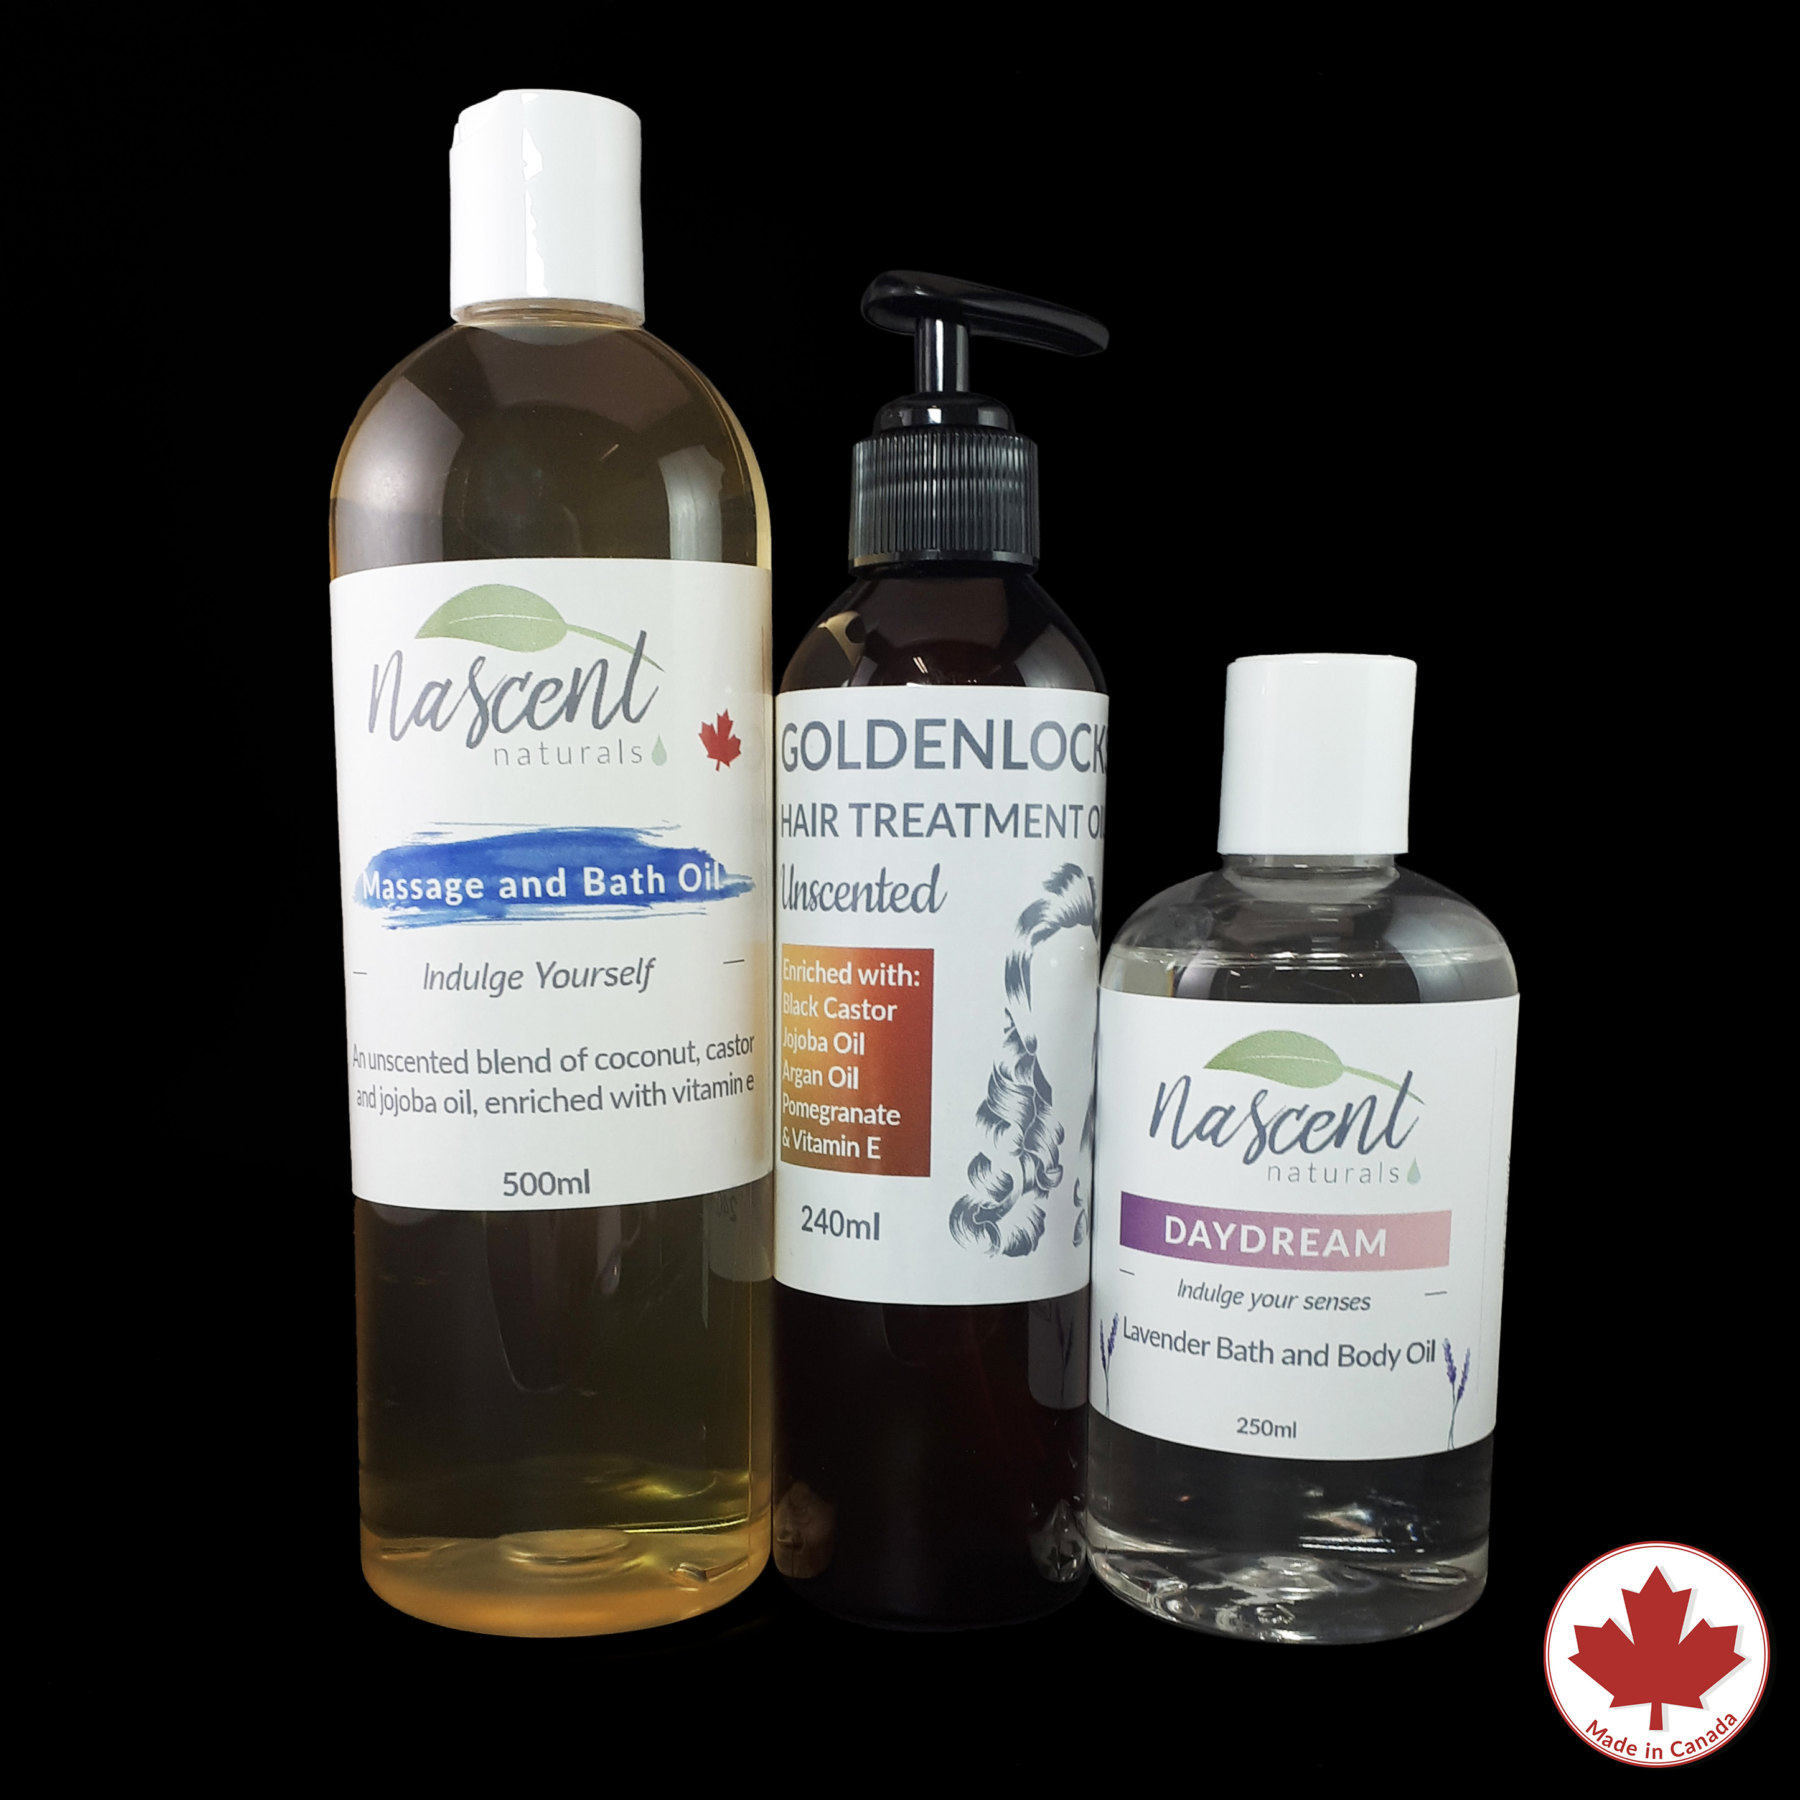 A bottle of massage oil base, a bottle of hair oil and a bottle of lavender bath oil in front of a black background